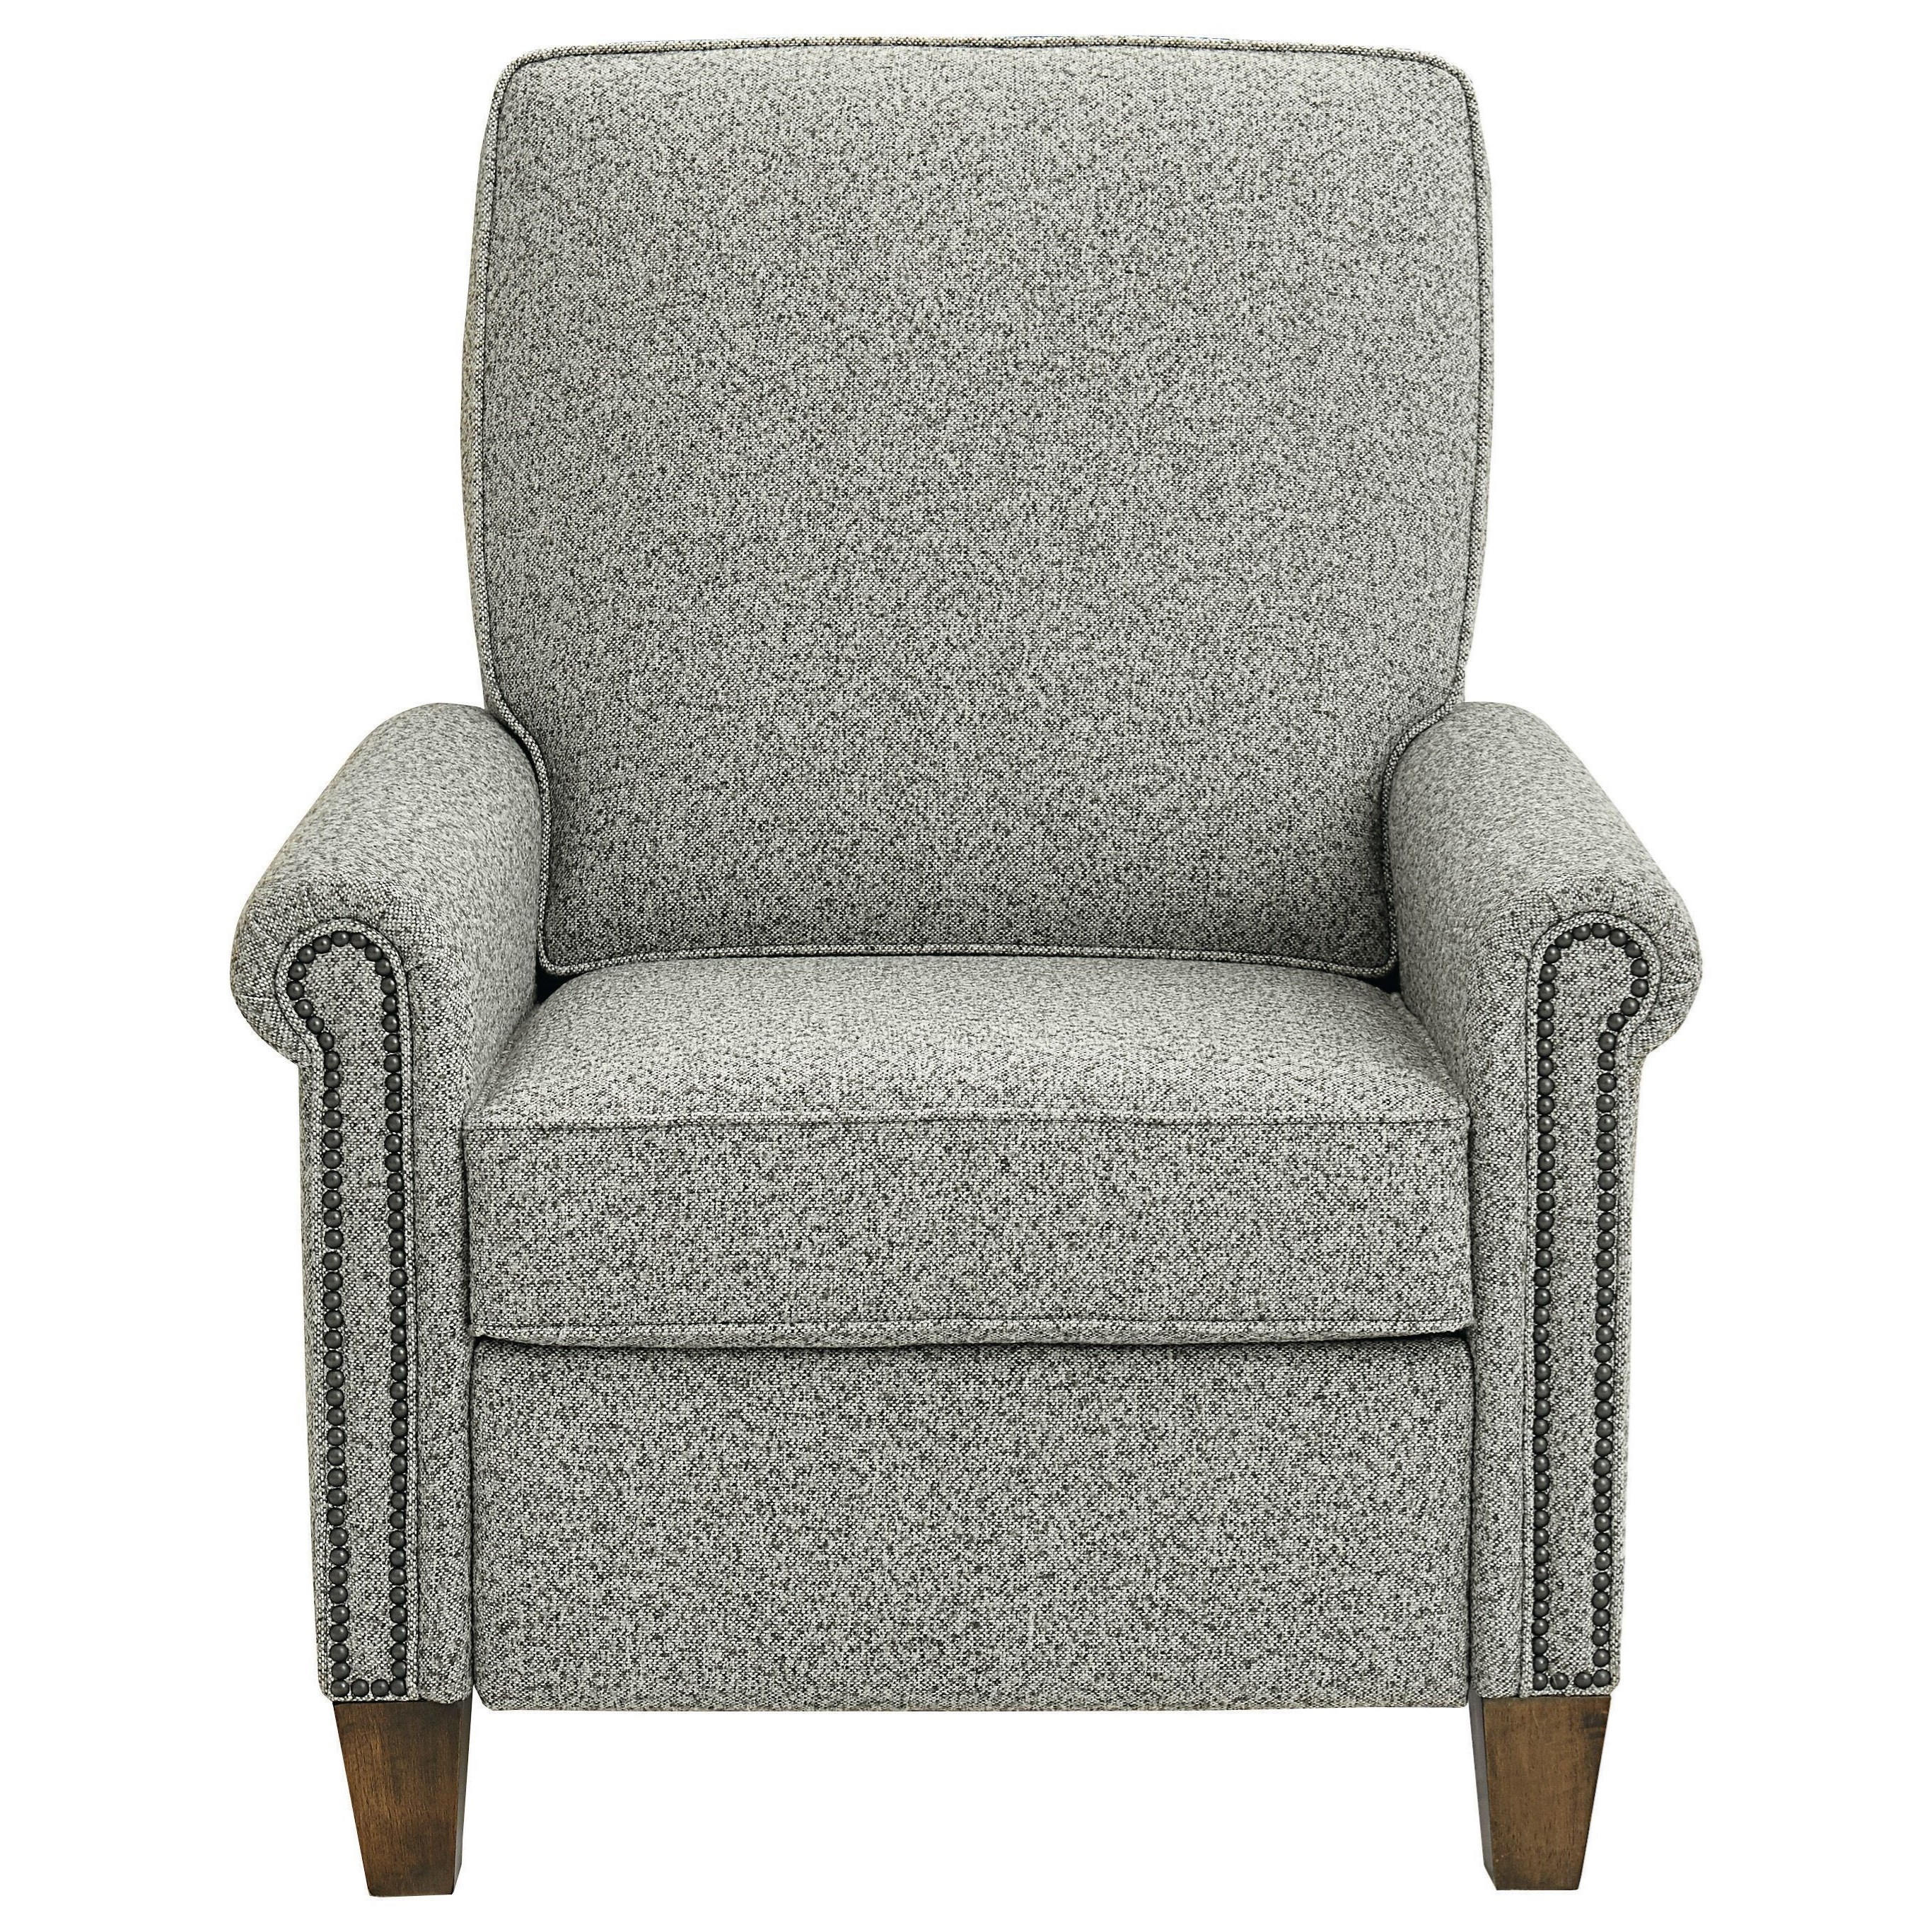 Thompson Accent Chair by Bassett at H.L. Stephens